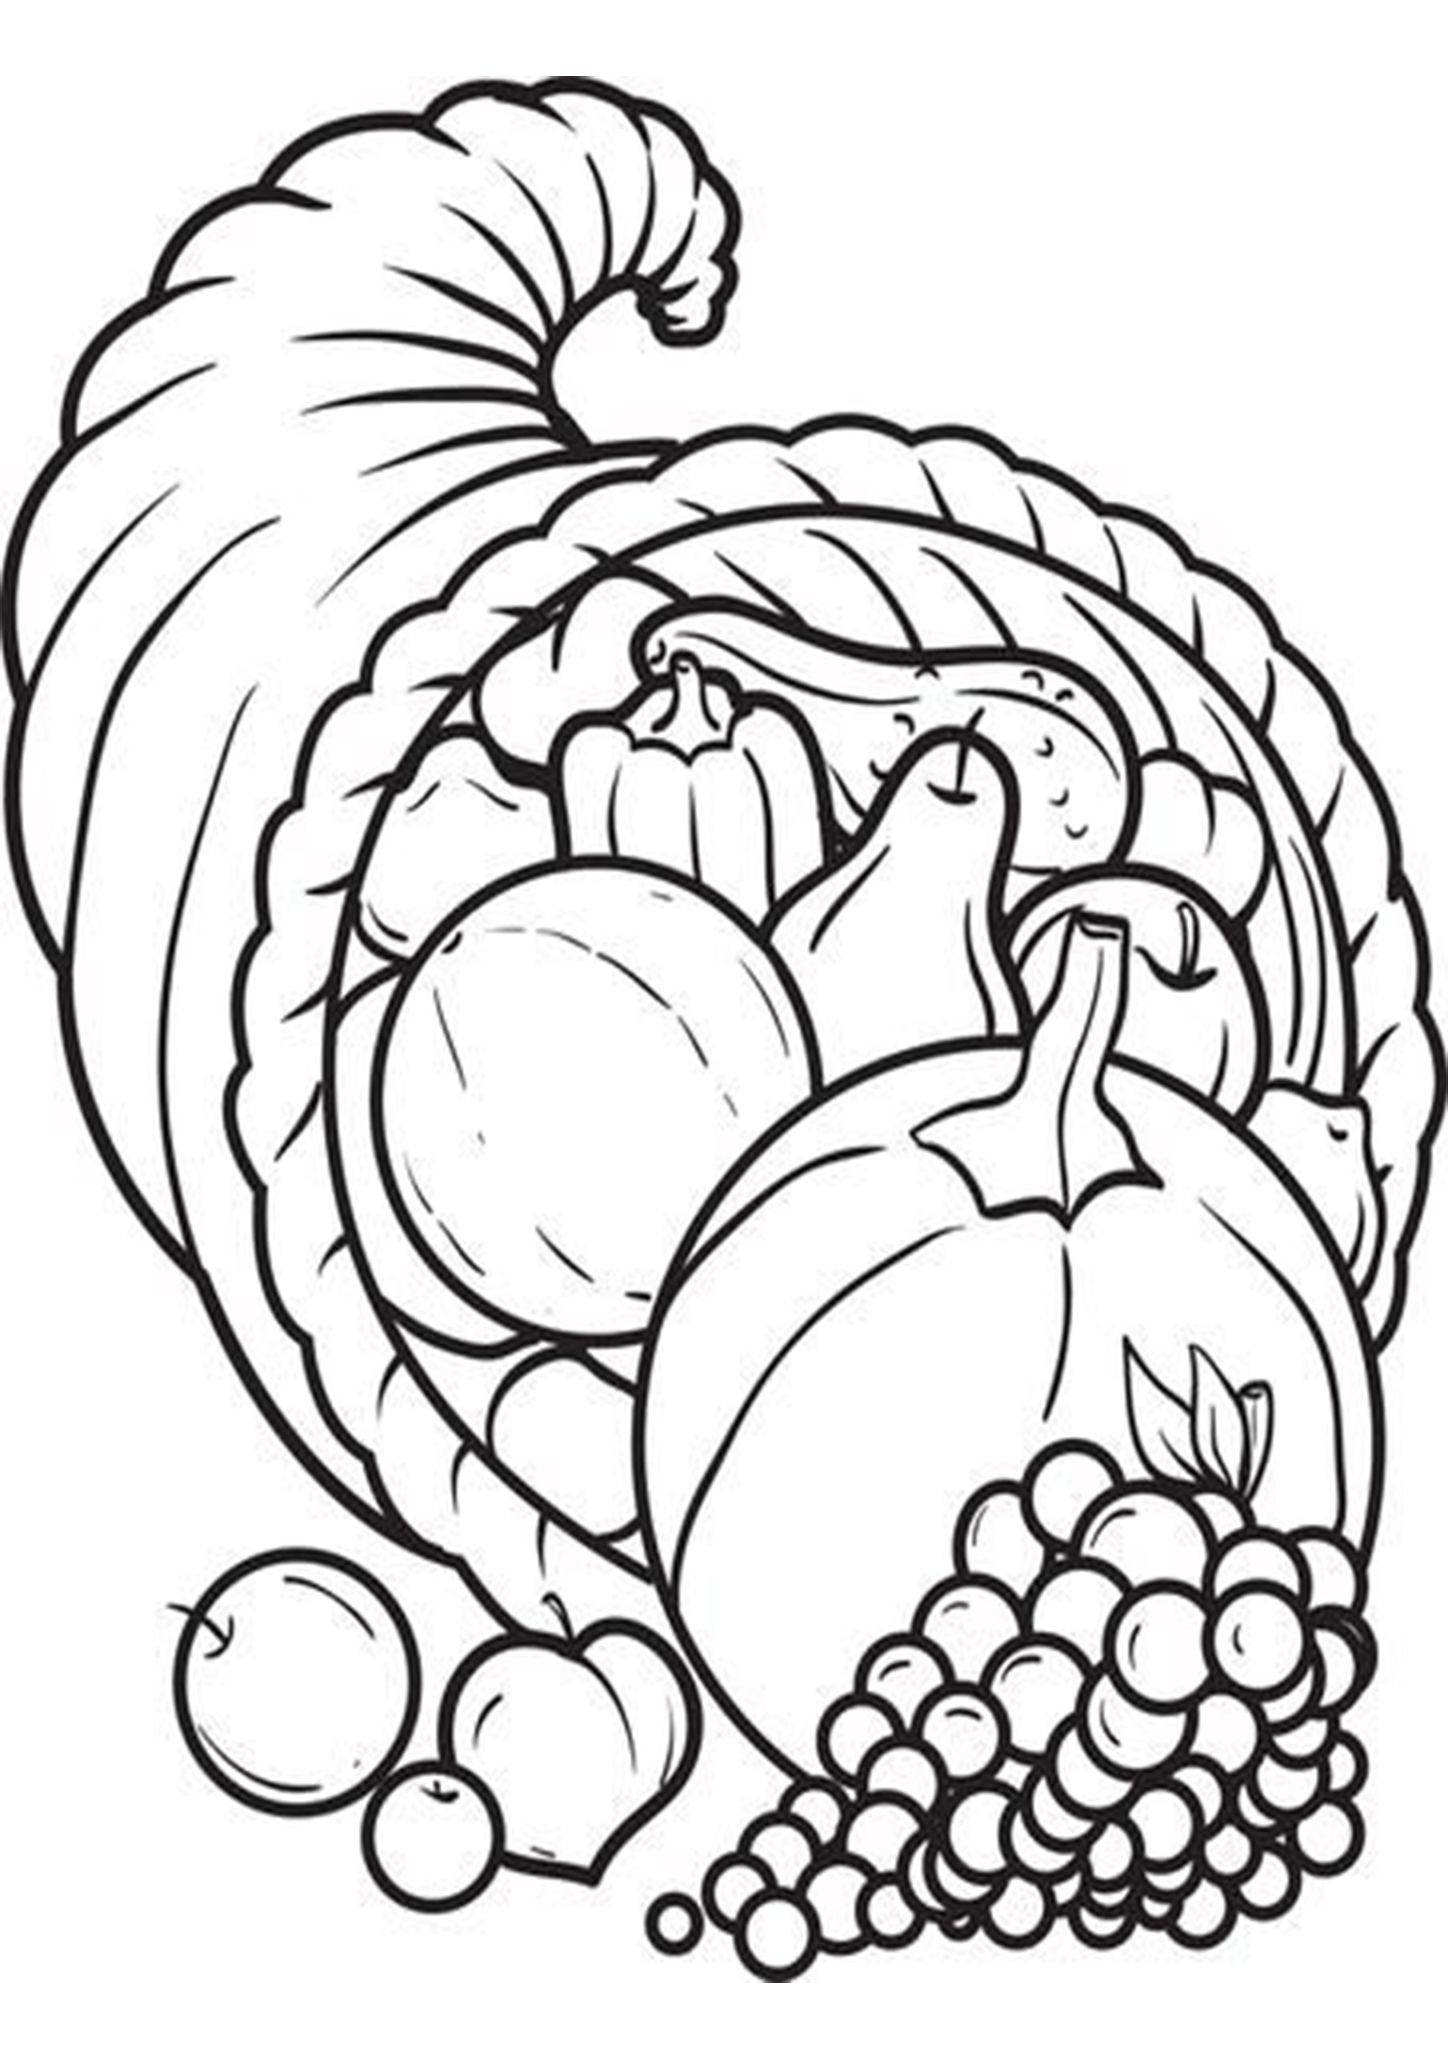 Free & Easy To Print Food Coloring Pages in 2020 Turkey